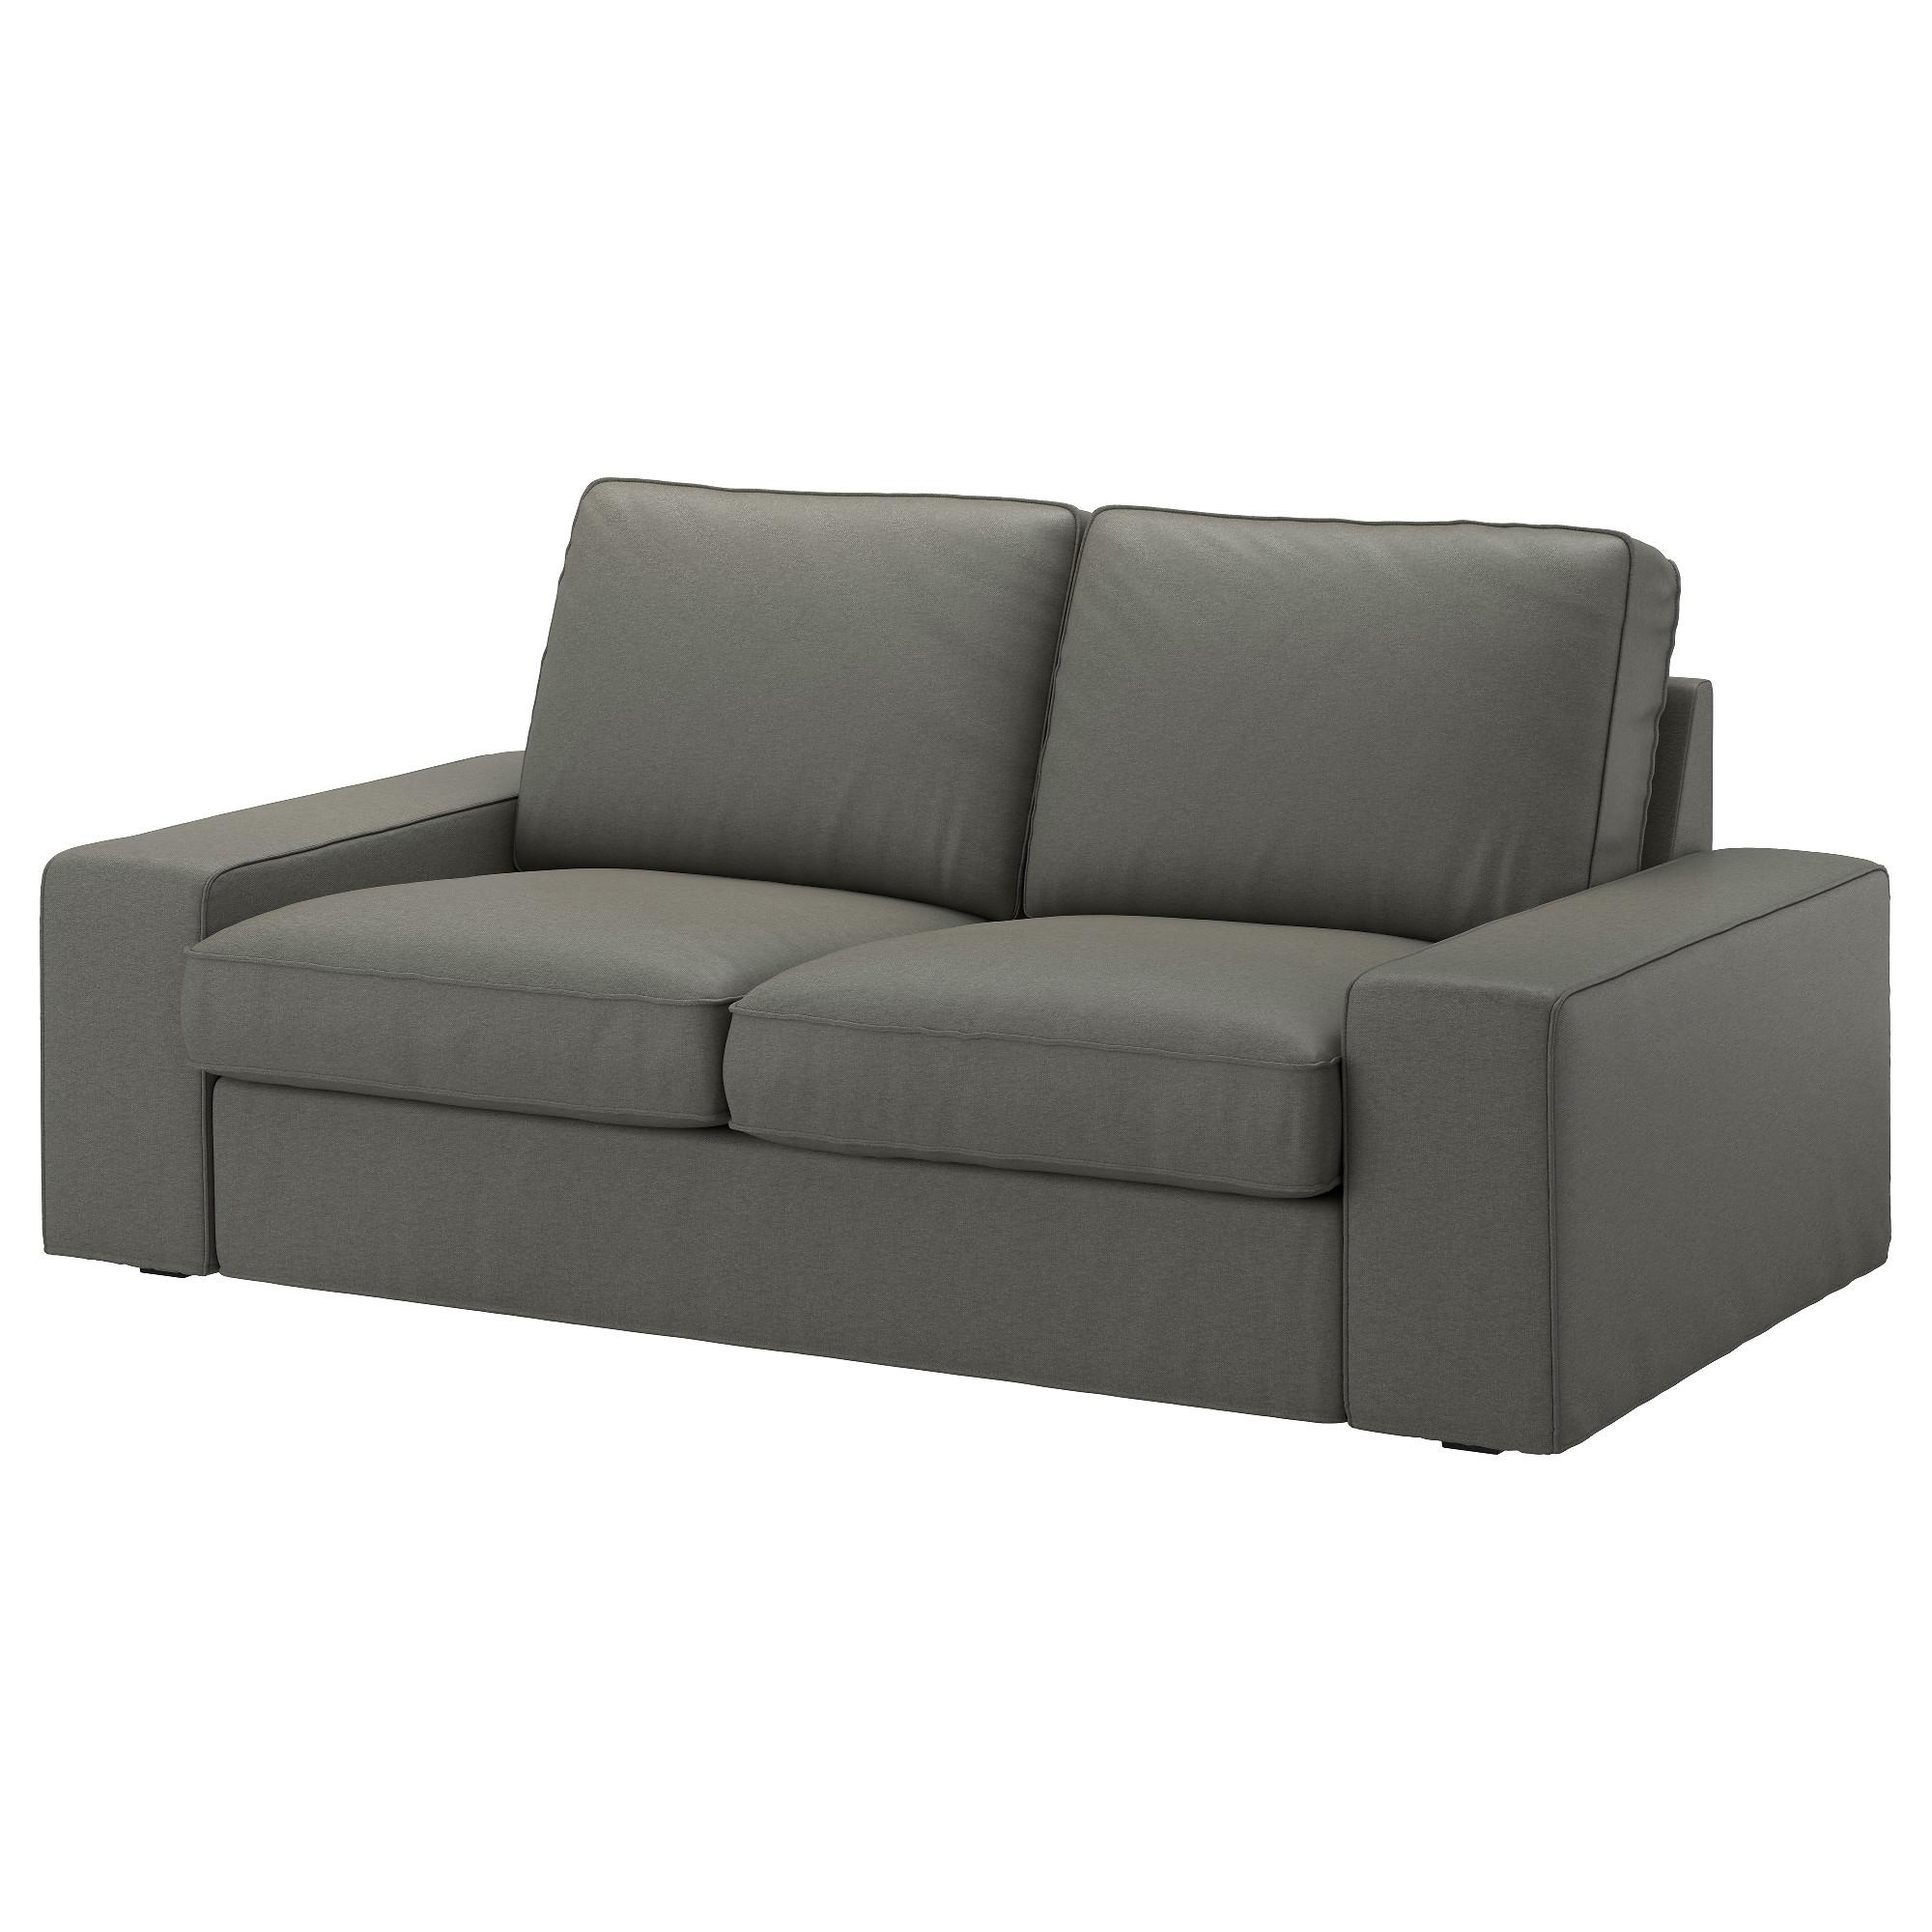 Ikea Kivik Sofa Recamiere 20 43 Choices Of Ikea Two Seater Sofas Sofa Ideas